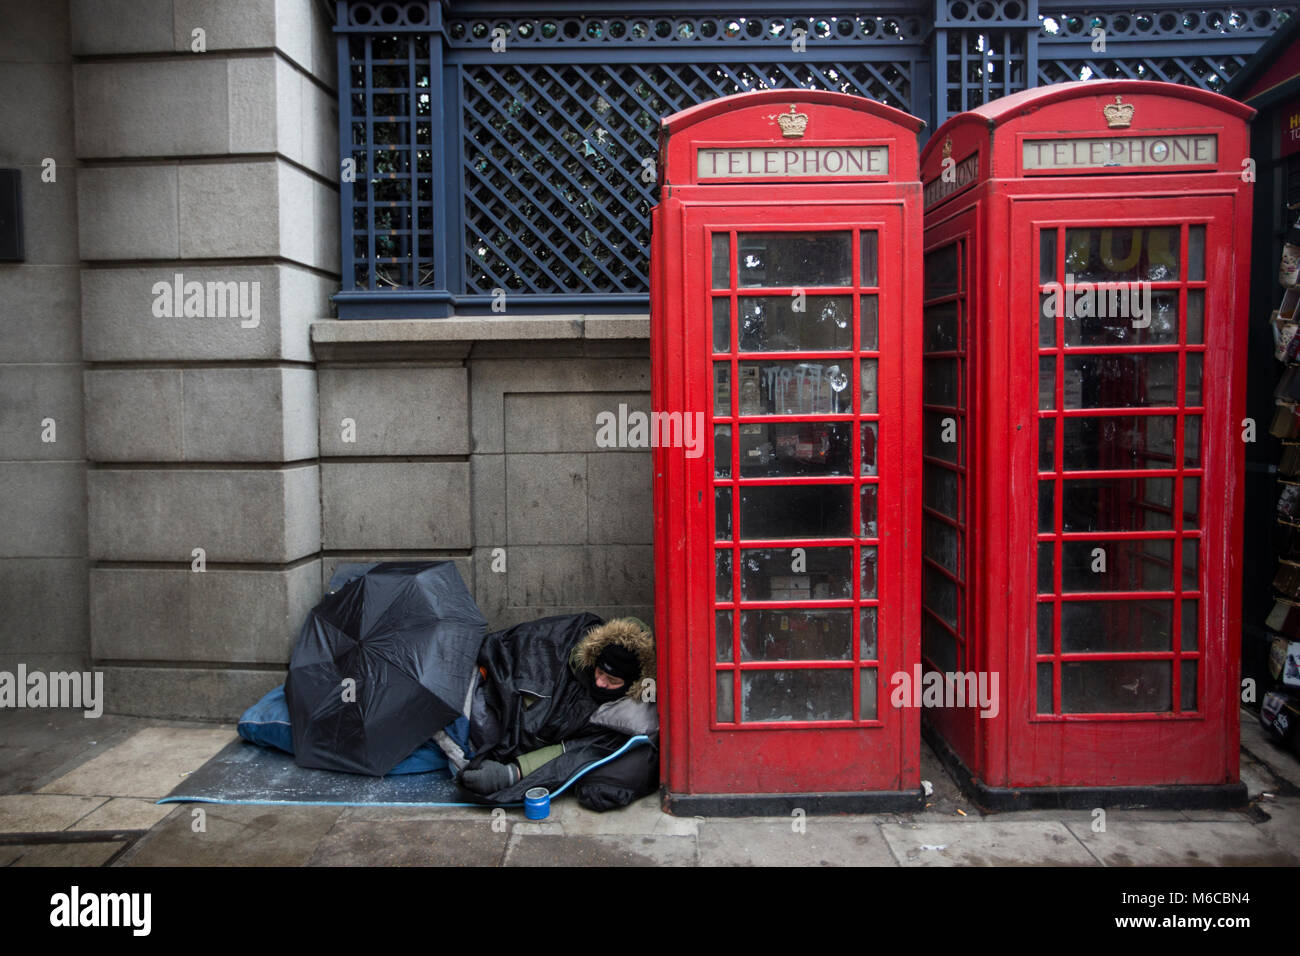 Rough sleeper, homeless man sleeping next to red telephone boxes on Piccadilly, central London, UK - Stock Image